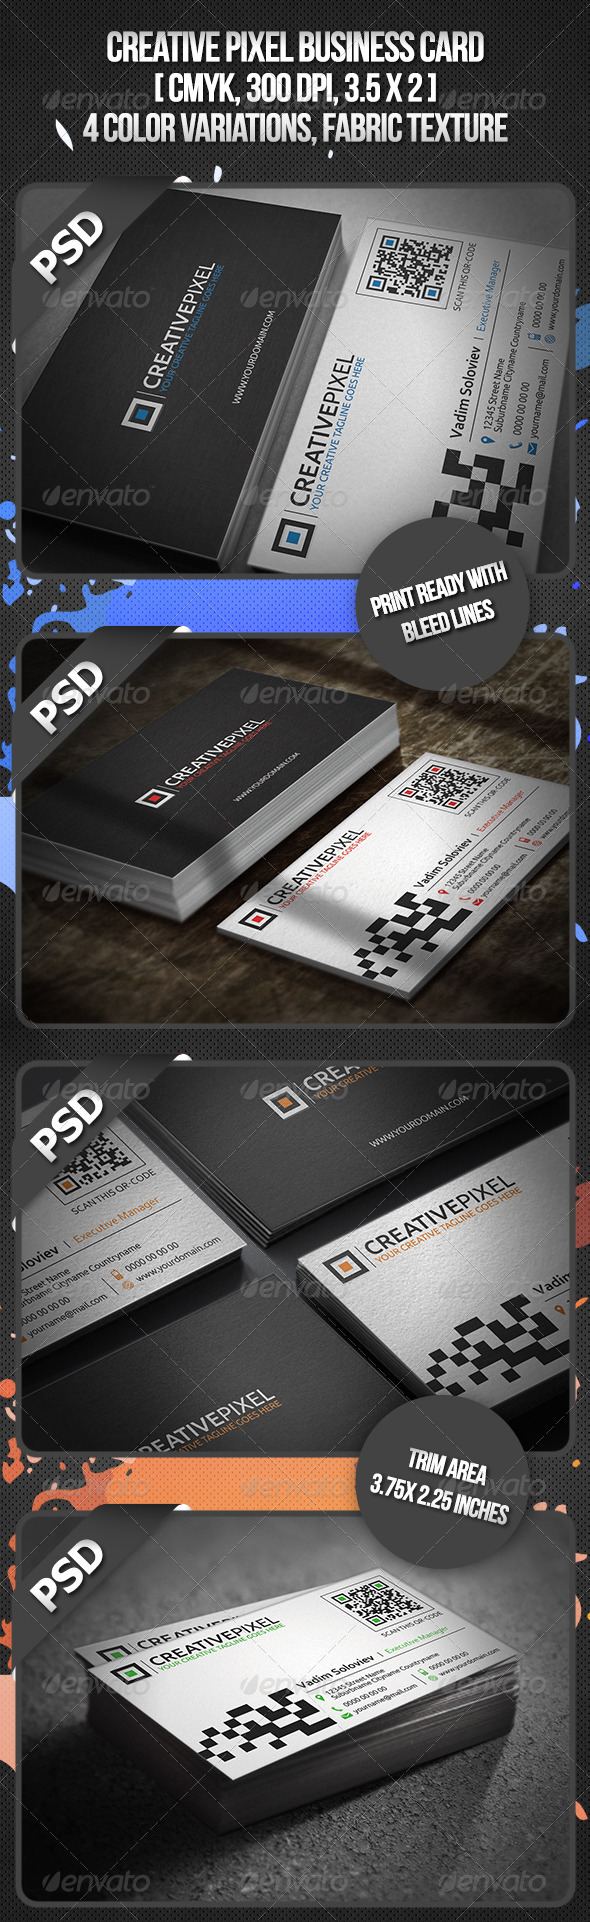 Creative Pixel Business Card - Creative Business Cards